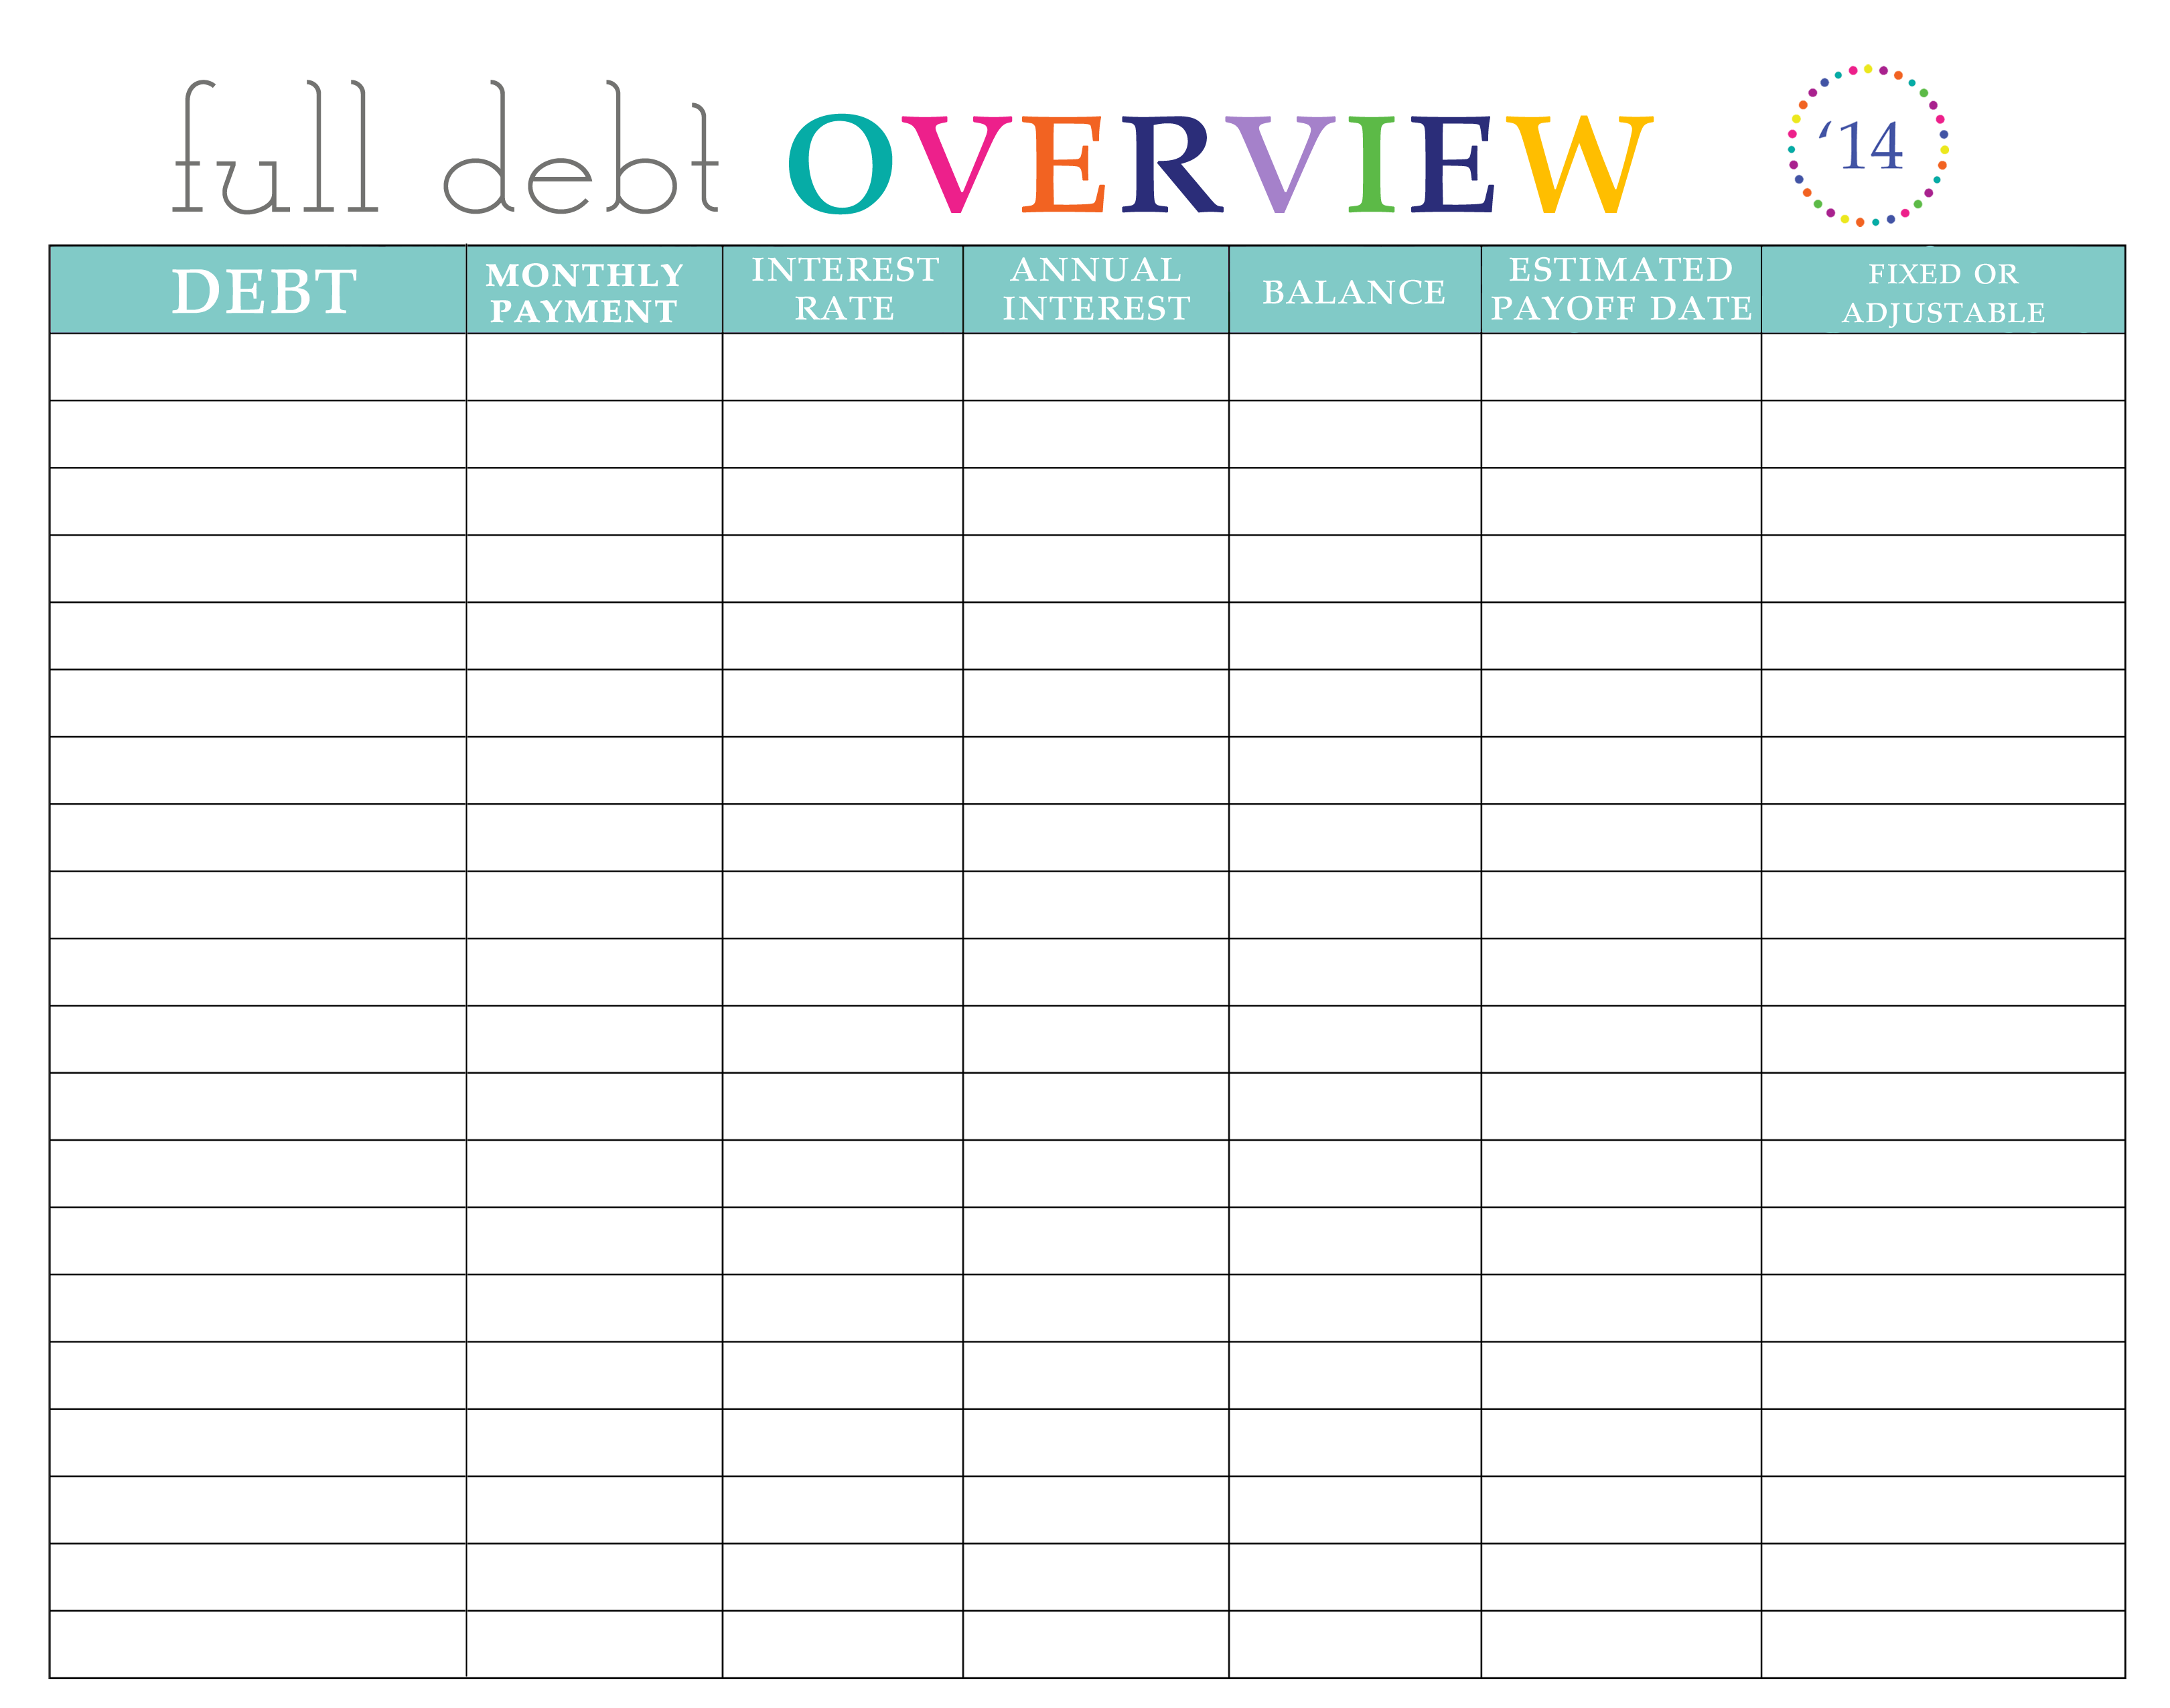 Worksheets Snowball Debt Worksheet debt repayment spreadsheet expin memberpro co spreadsheet